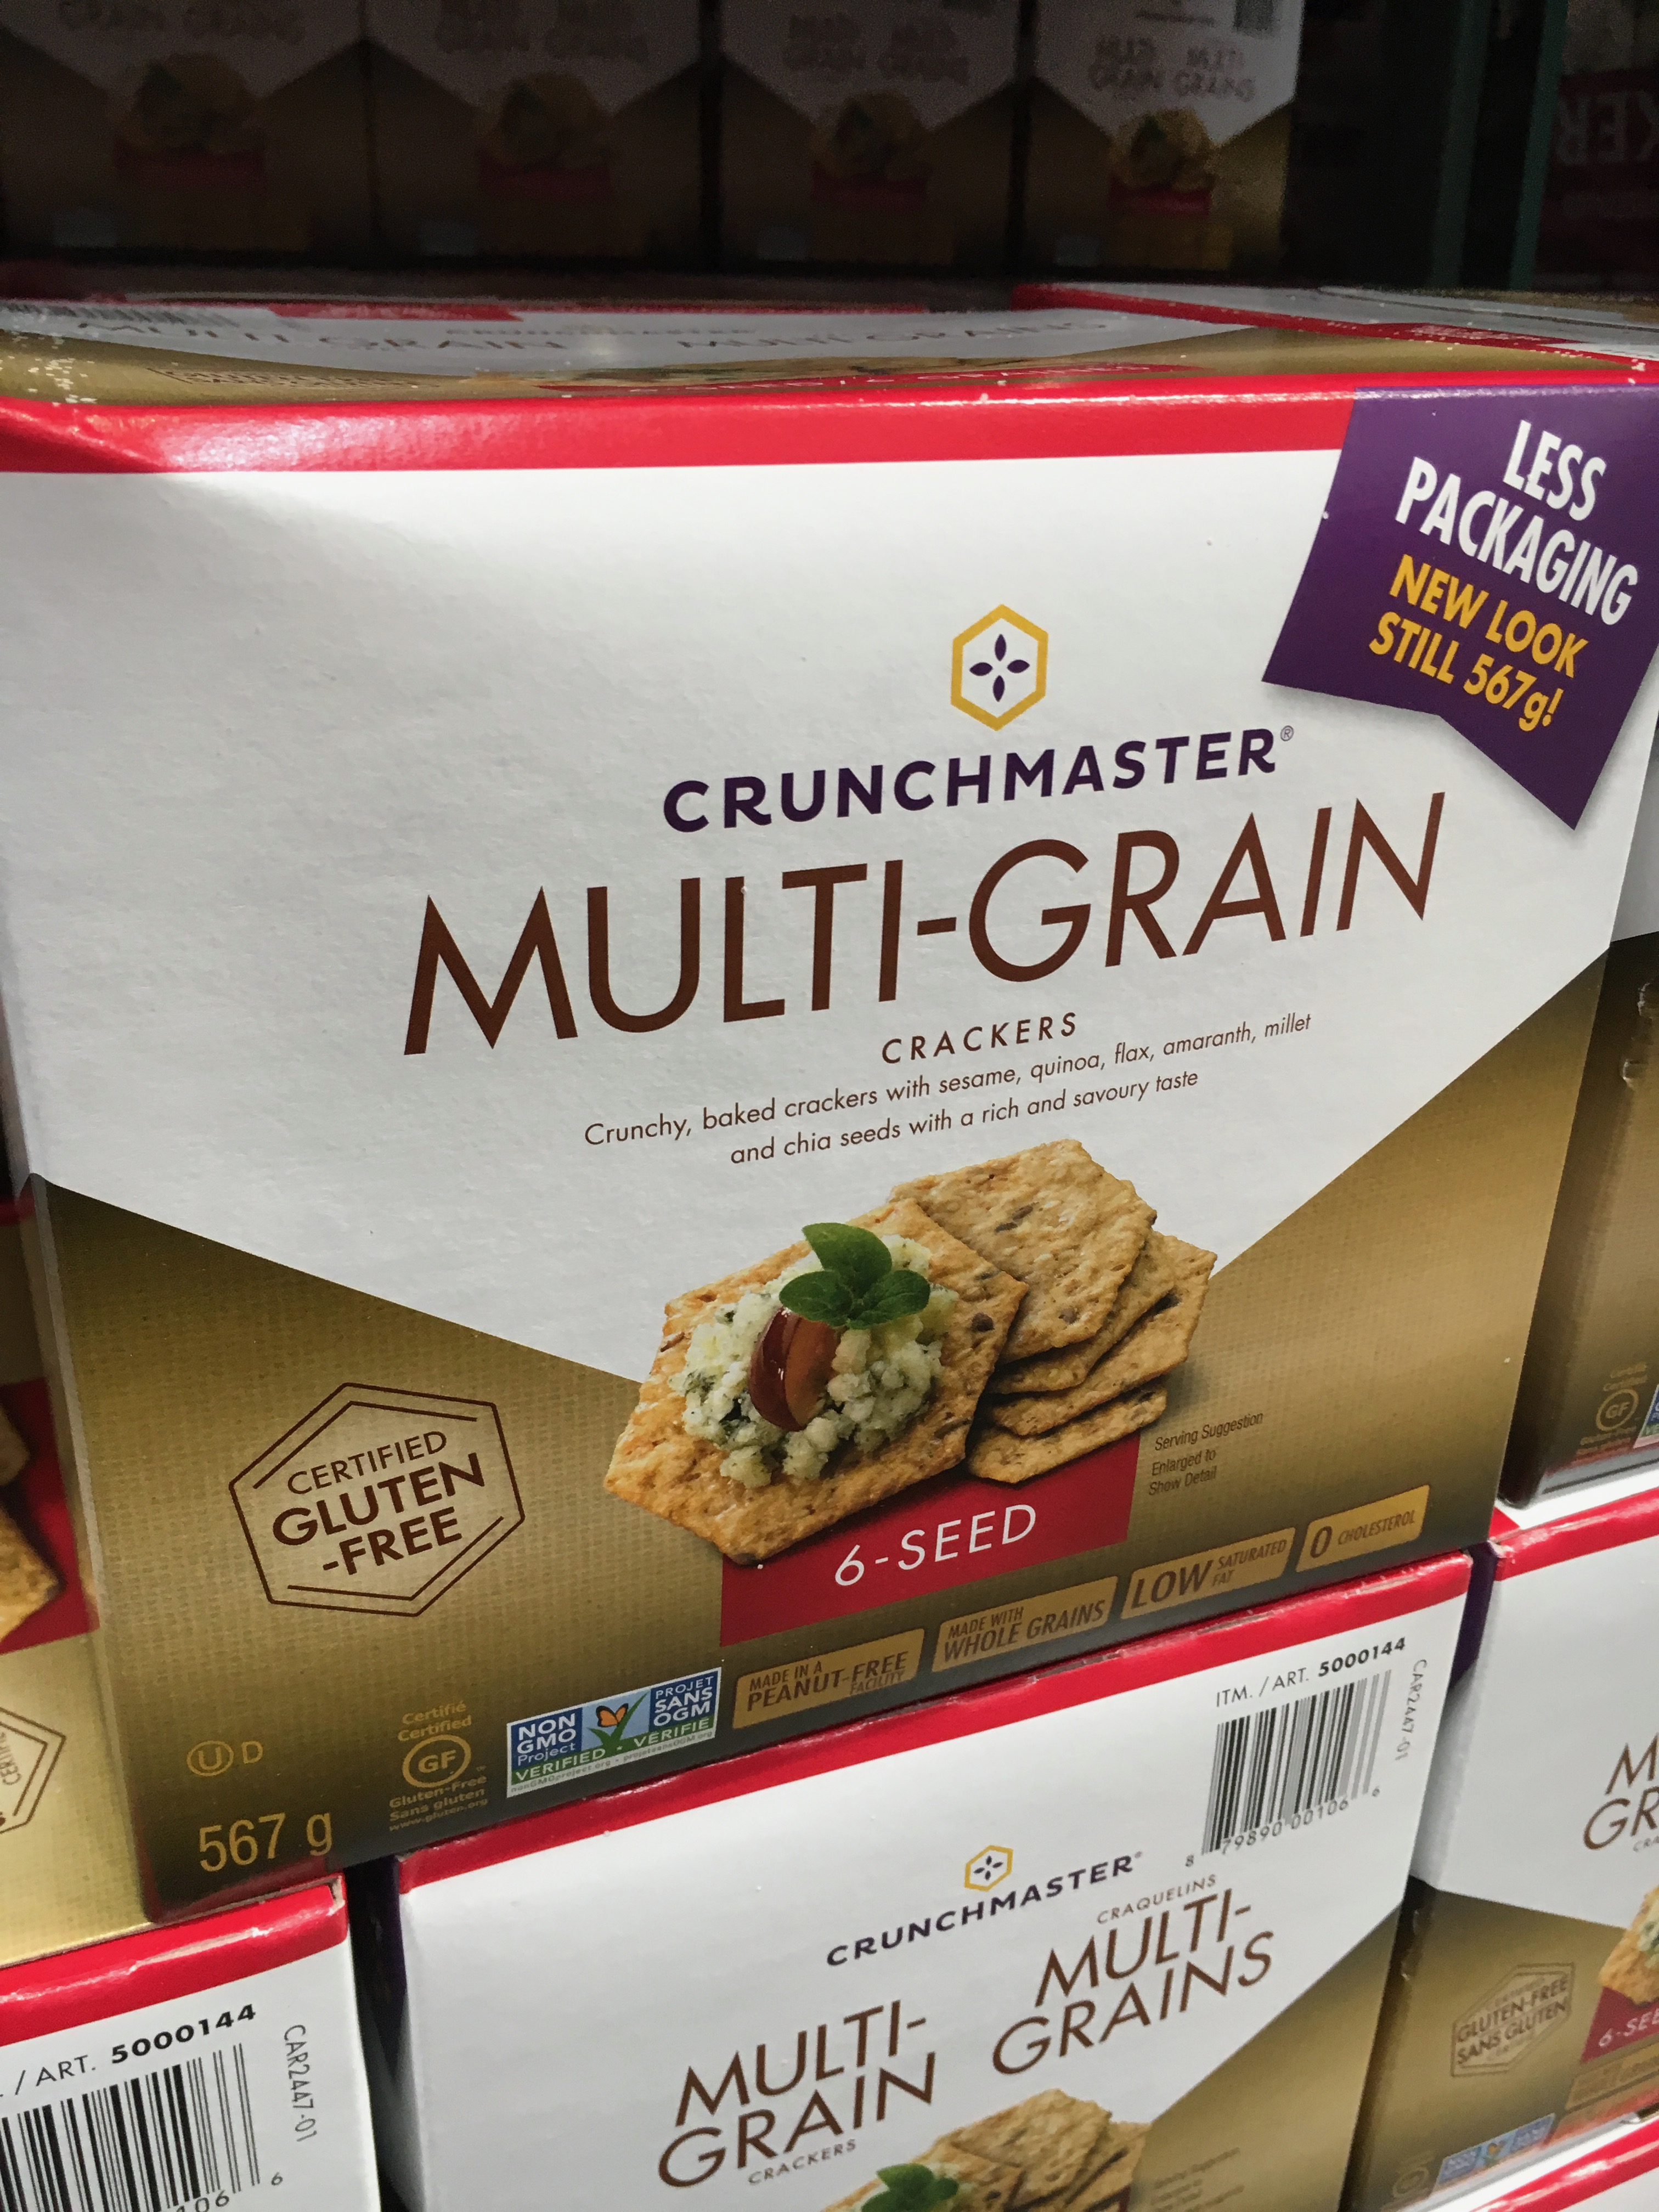 Costco review: Whole-grain crackers and other crunchy crispy